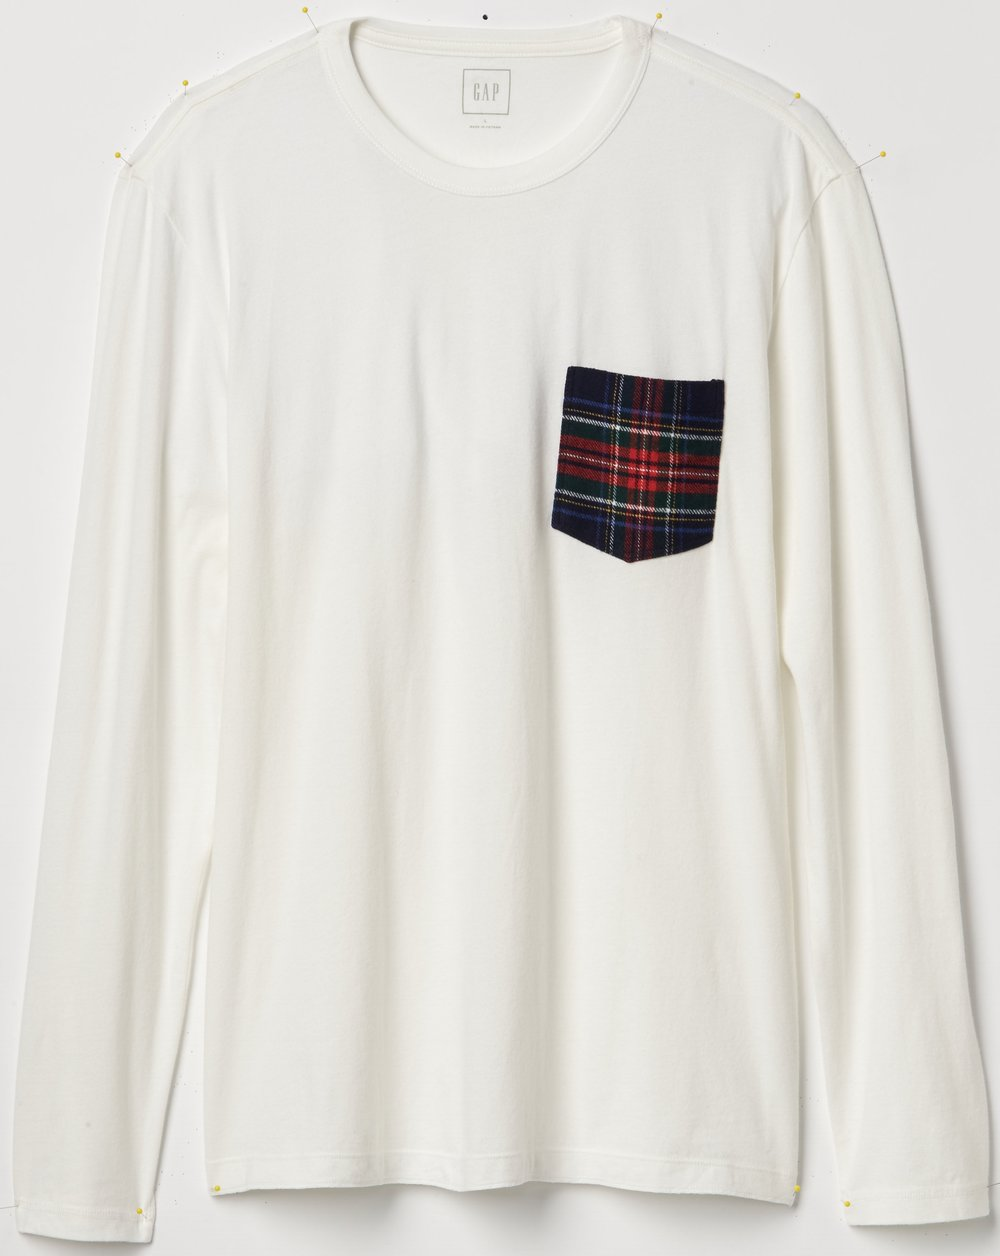 Gap x Pendleton Long Sleeve Pocket Tee, $14.98